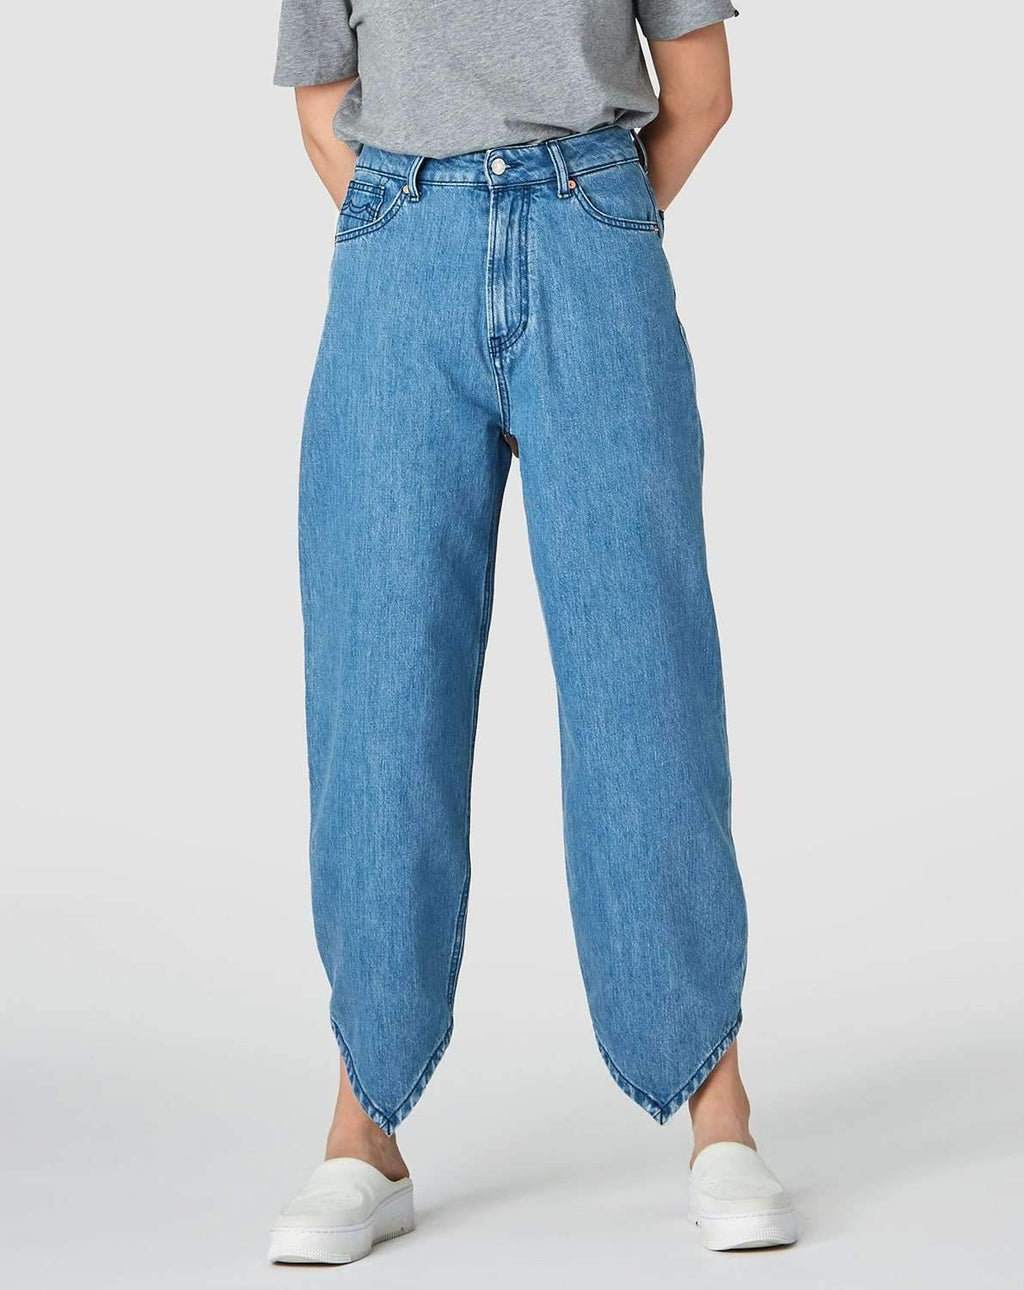 Leila Bottom Level jeans Bukser Kings of Indigo